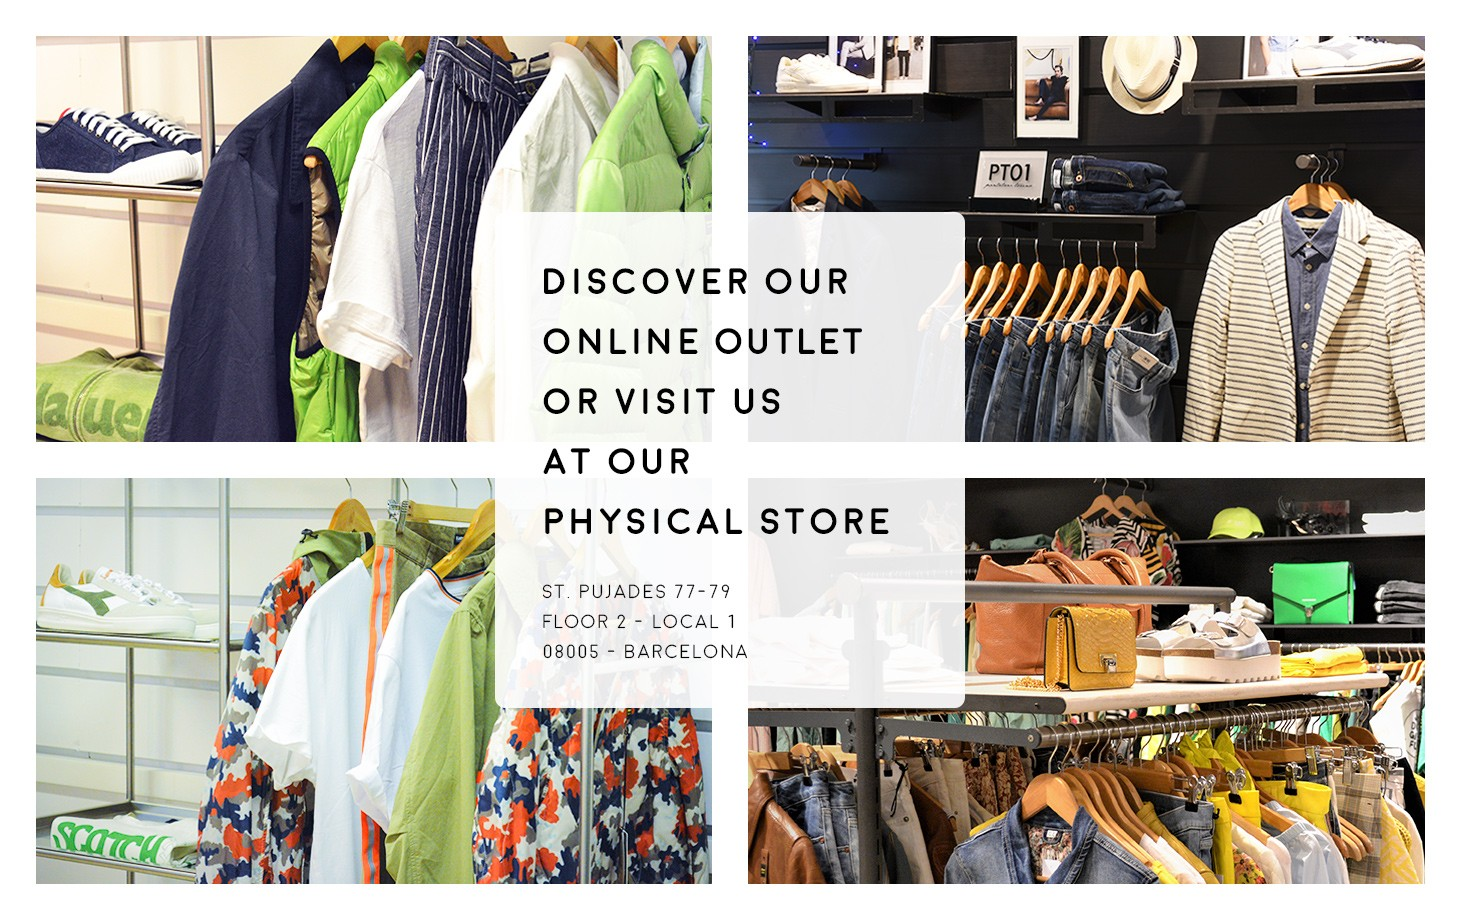 Discover our online outlet or visit us in our physical store